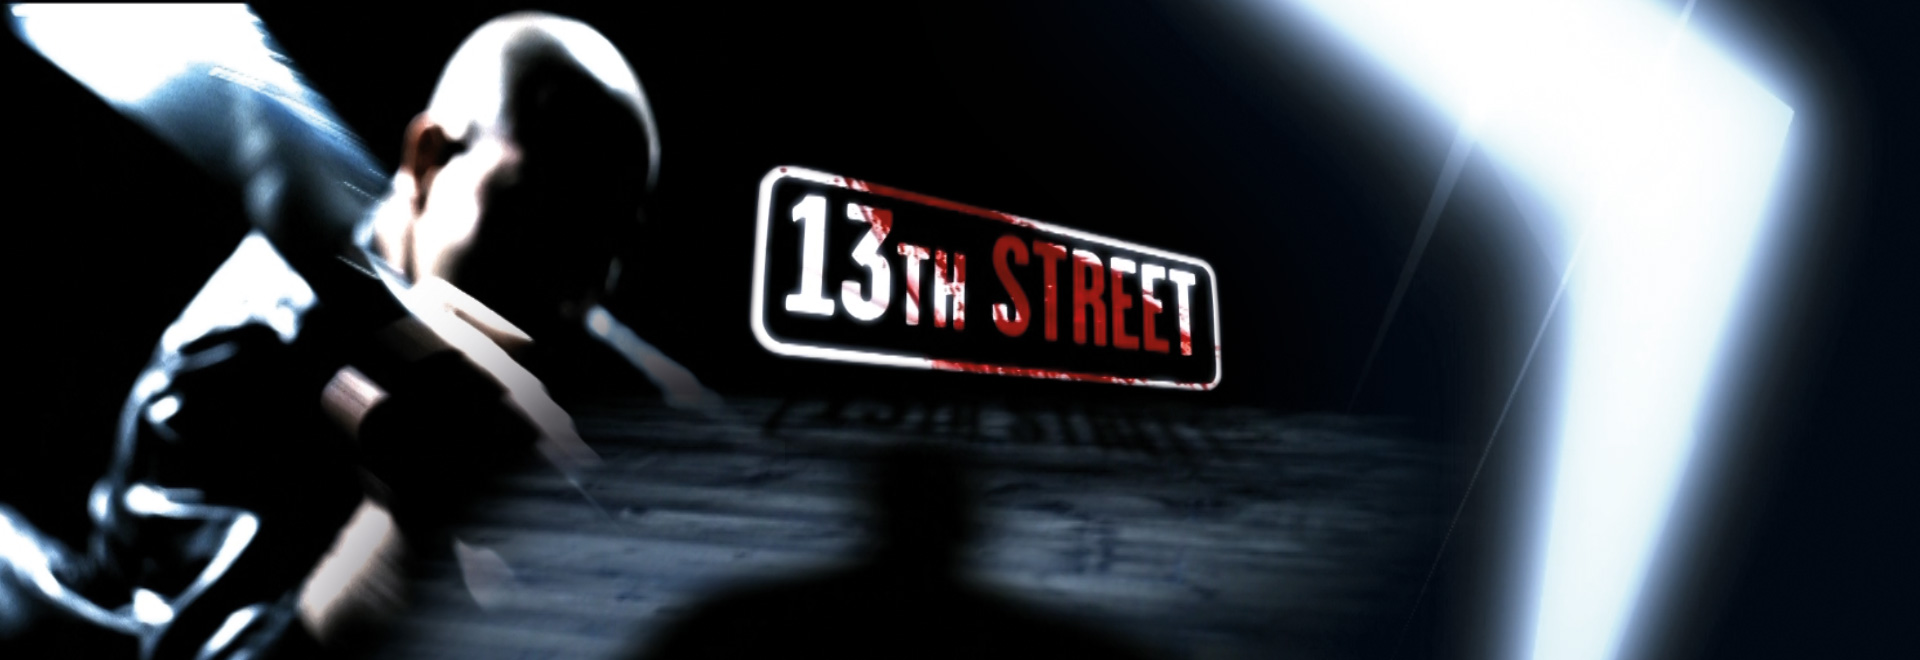 js-filmproduction-postproduction-design-13thStreeet-Horror-collage